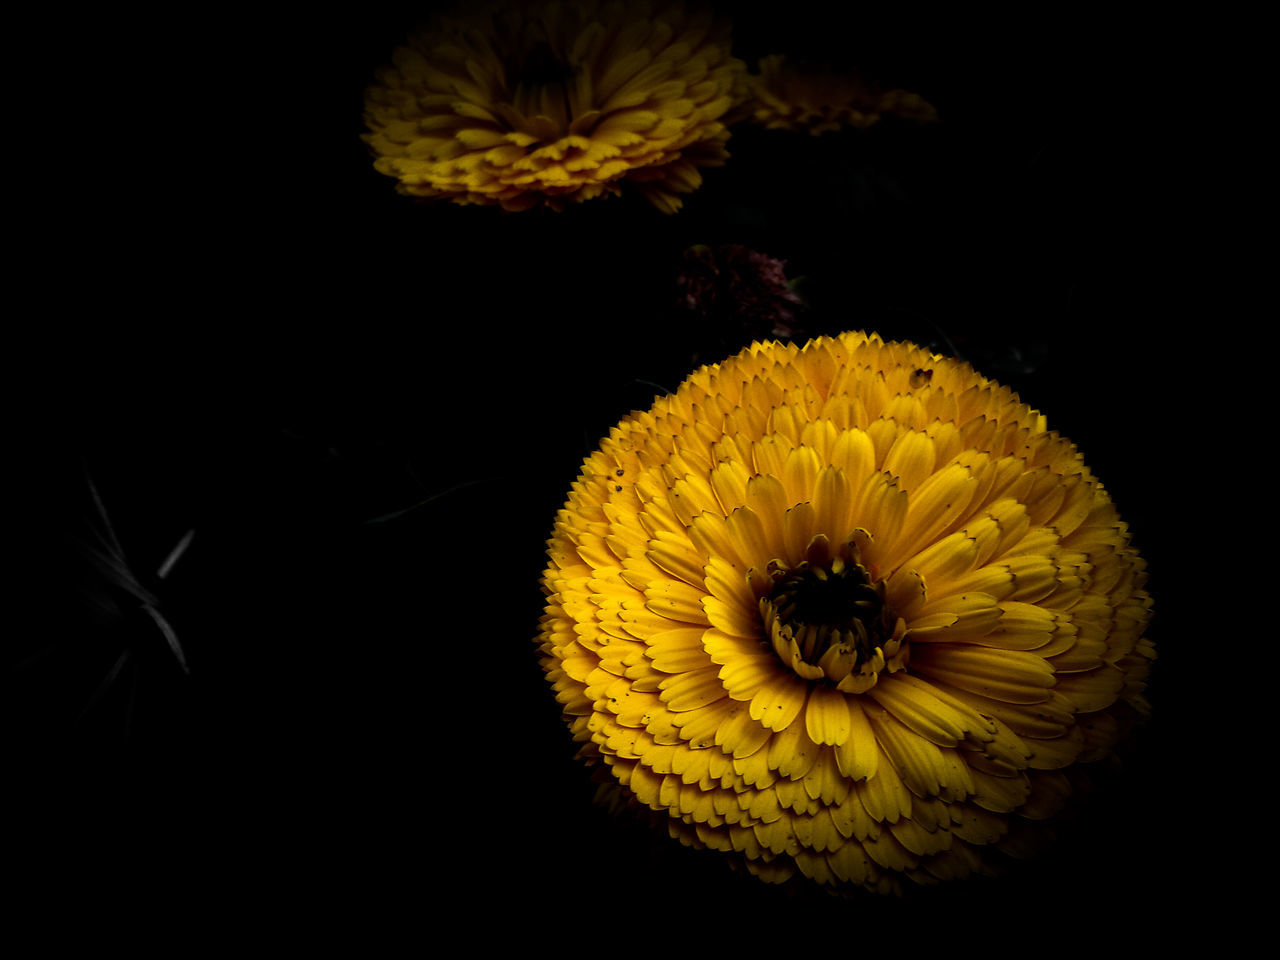 Flower Yellow Flower Head Black Background Nature Plant Sunflower Petal No People Close-up Beauty In Nature Fragility Freshness Studio Shot Poppy Outdoors Day